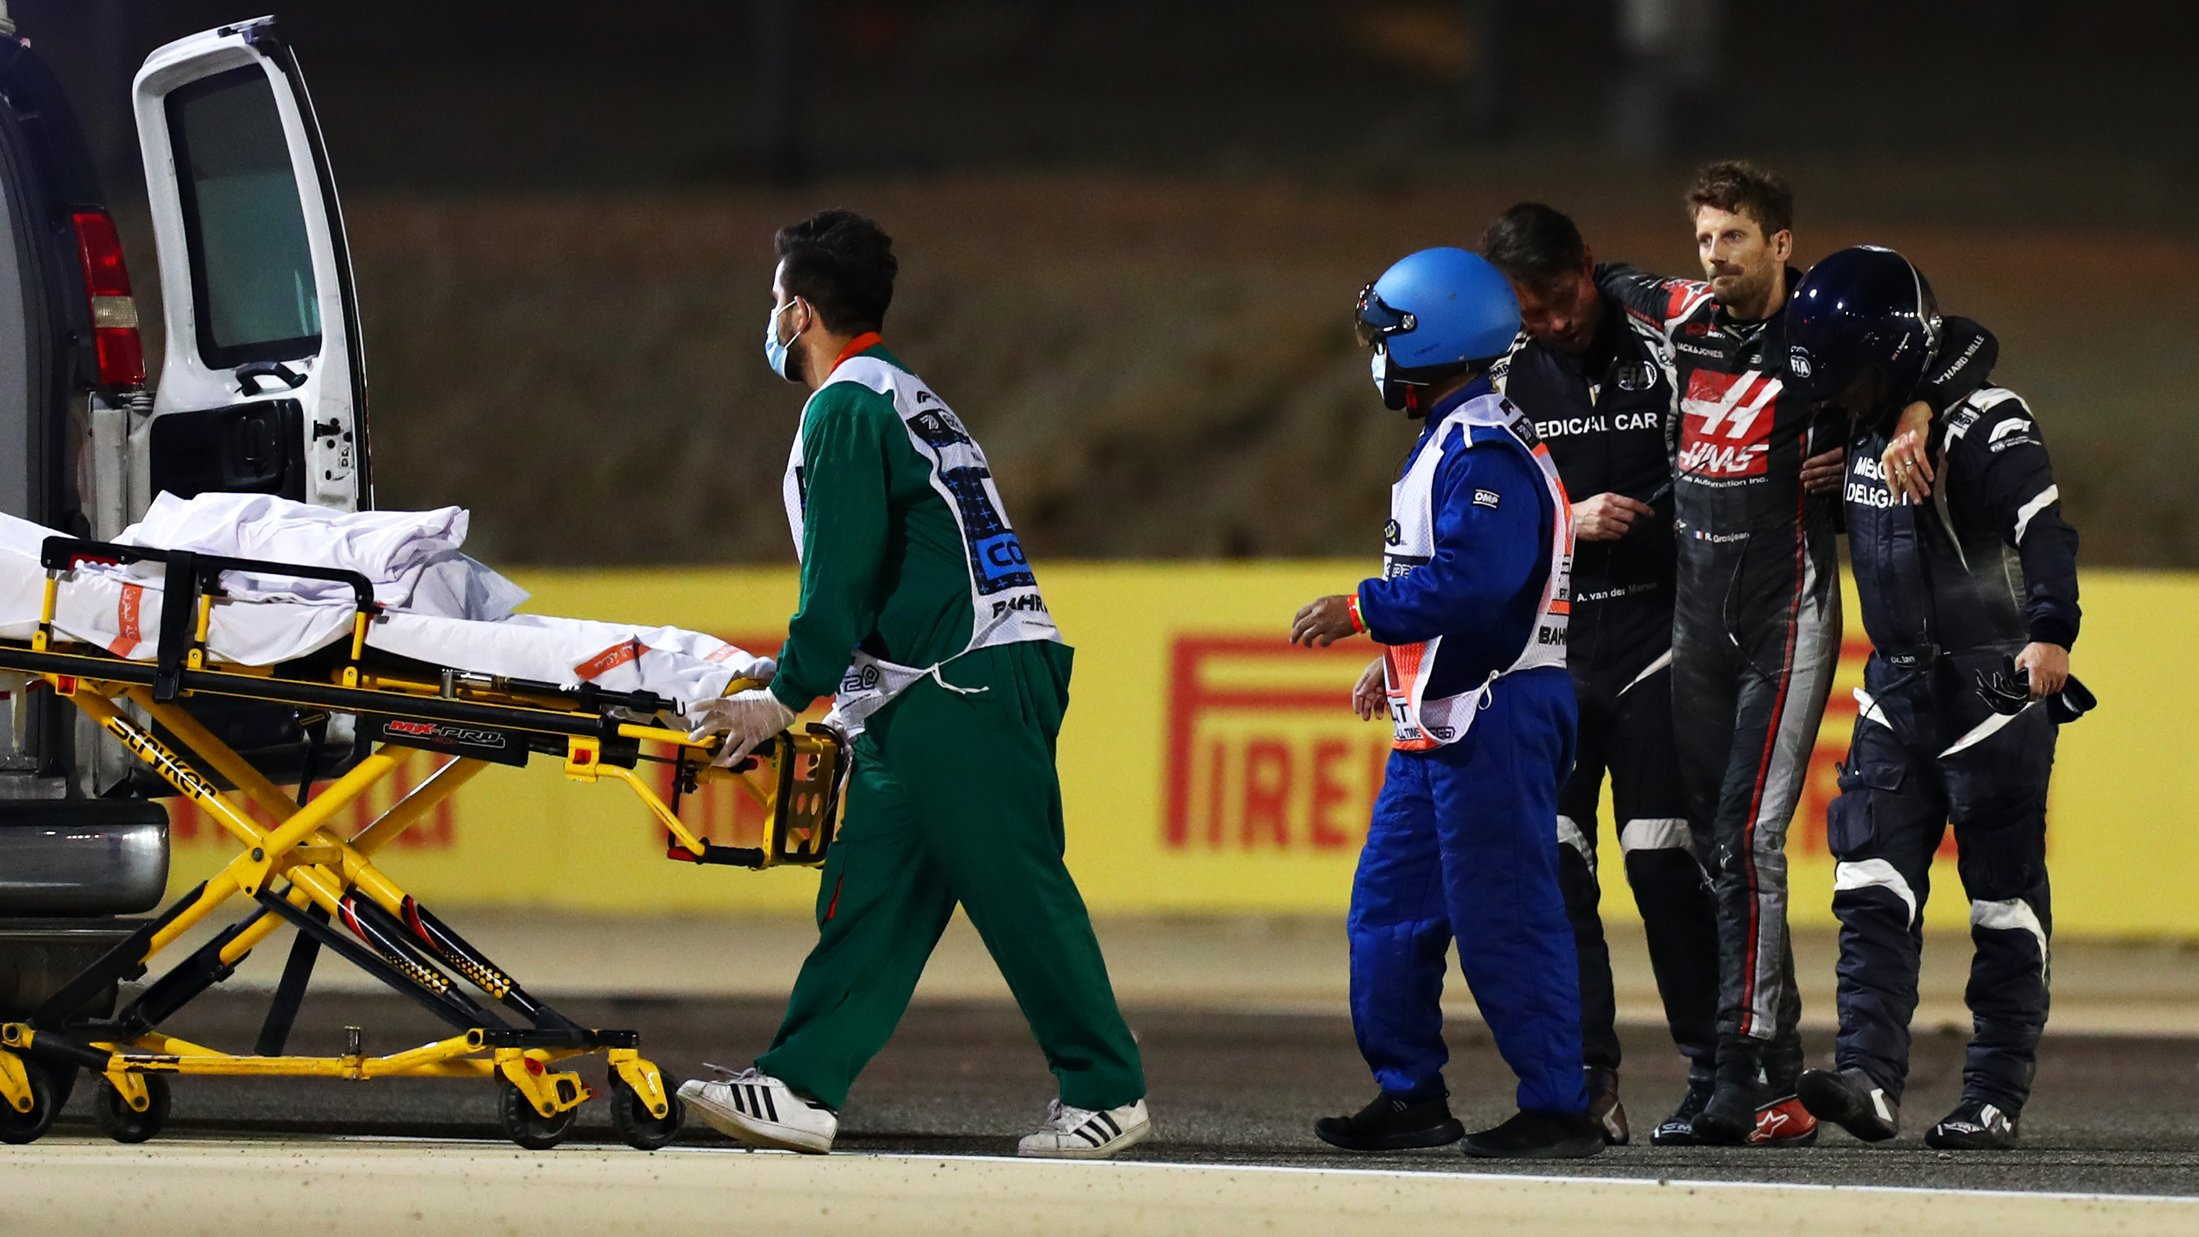 Grosjean describes halo as 'greatest thing' from hospital bed, saying he 'wouldn't be here without it' | Formula 1®